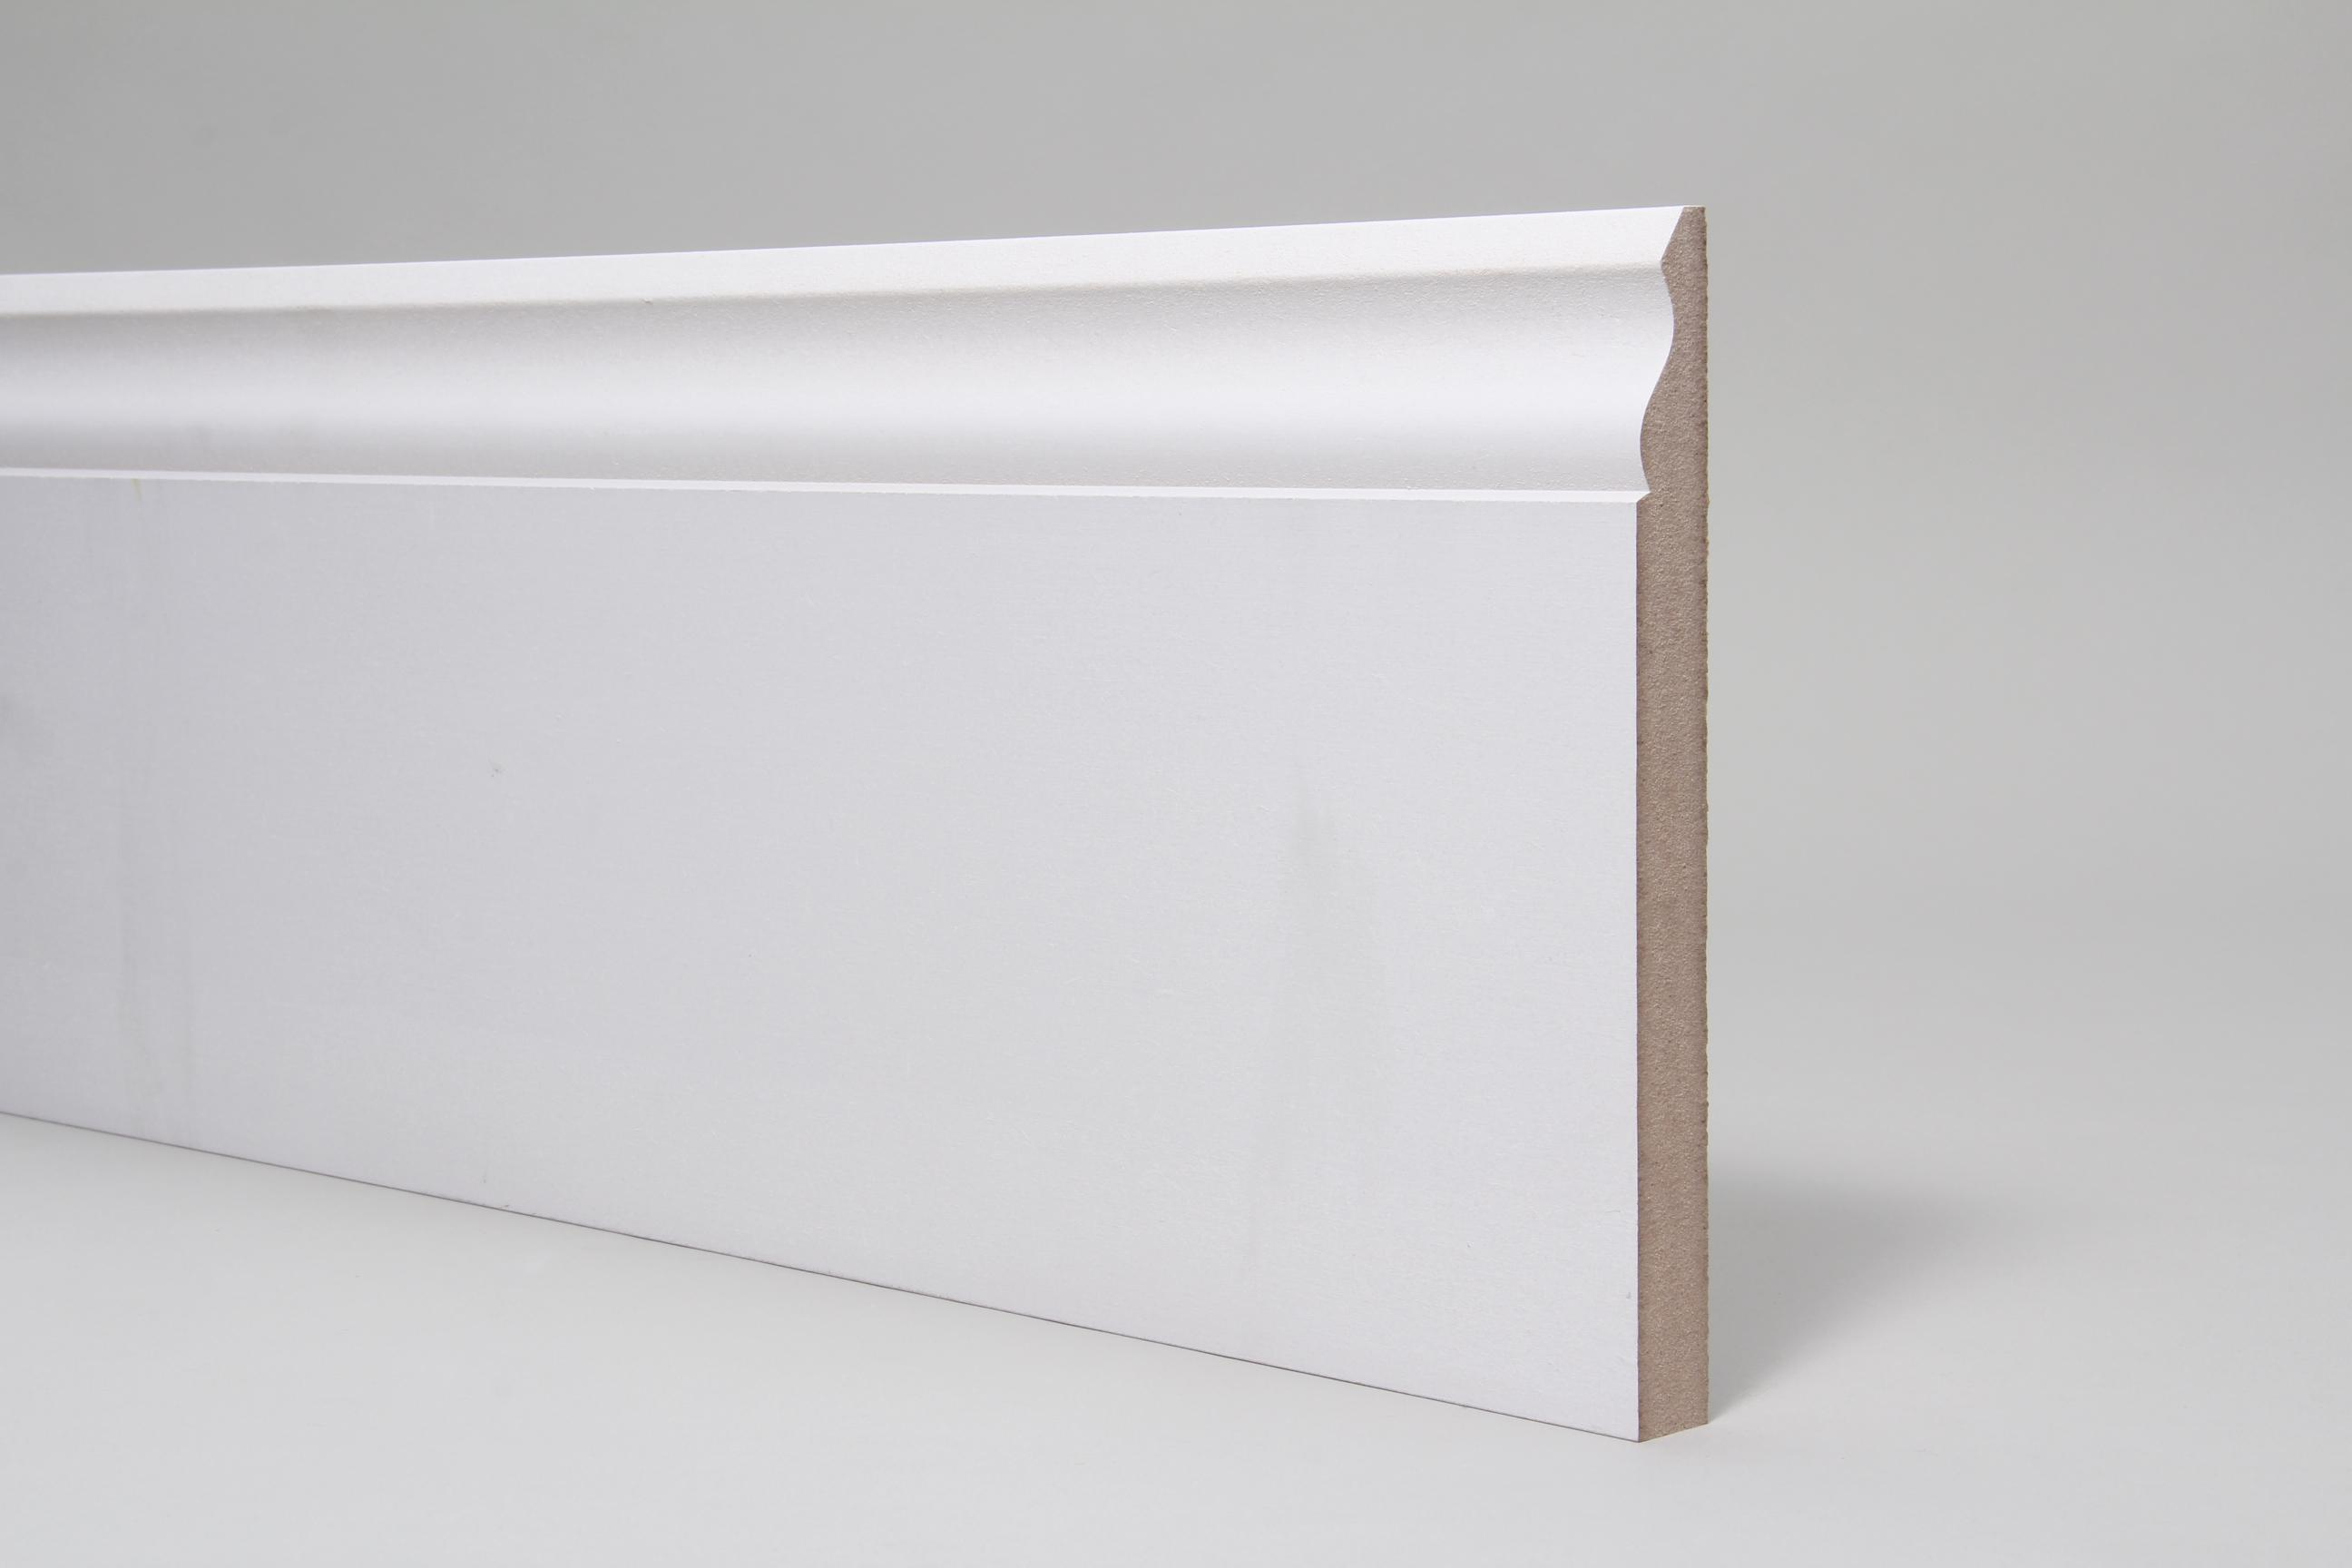 Ogee 18mm x 194mm x 4.4 Mtr Primed